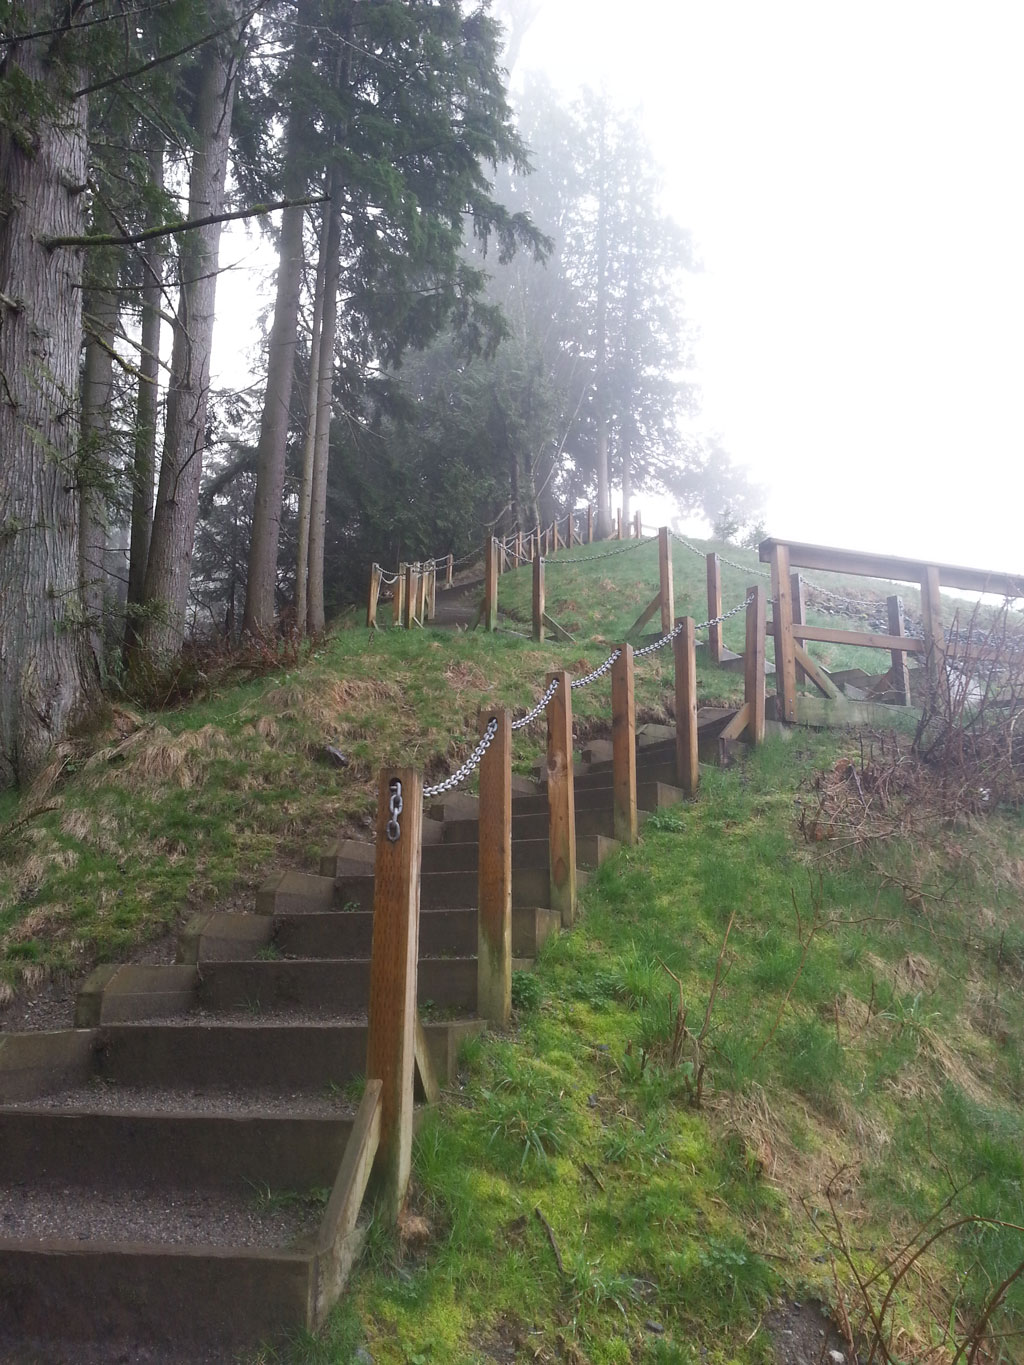 The stairs will make you feel the burn, but getting to the top is worth it.